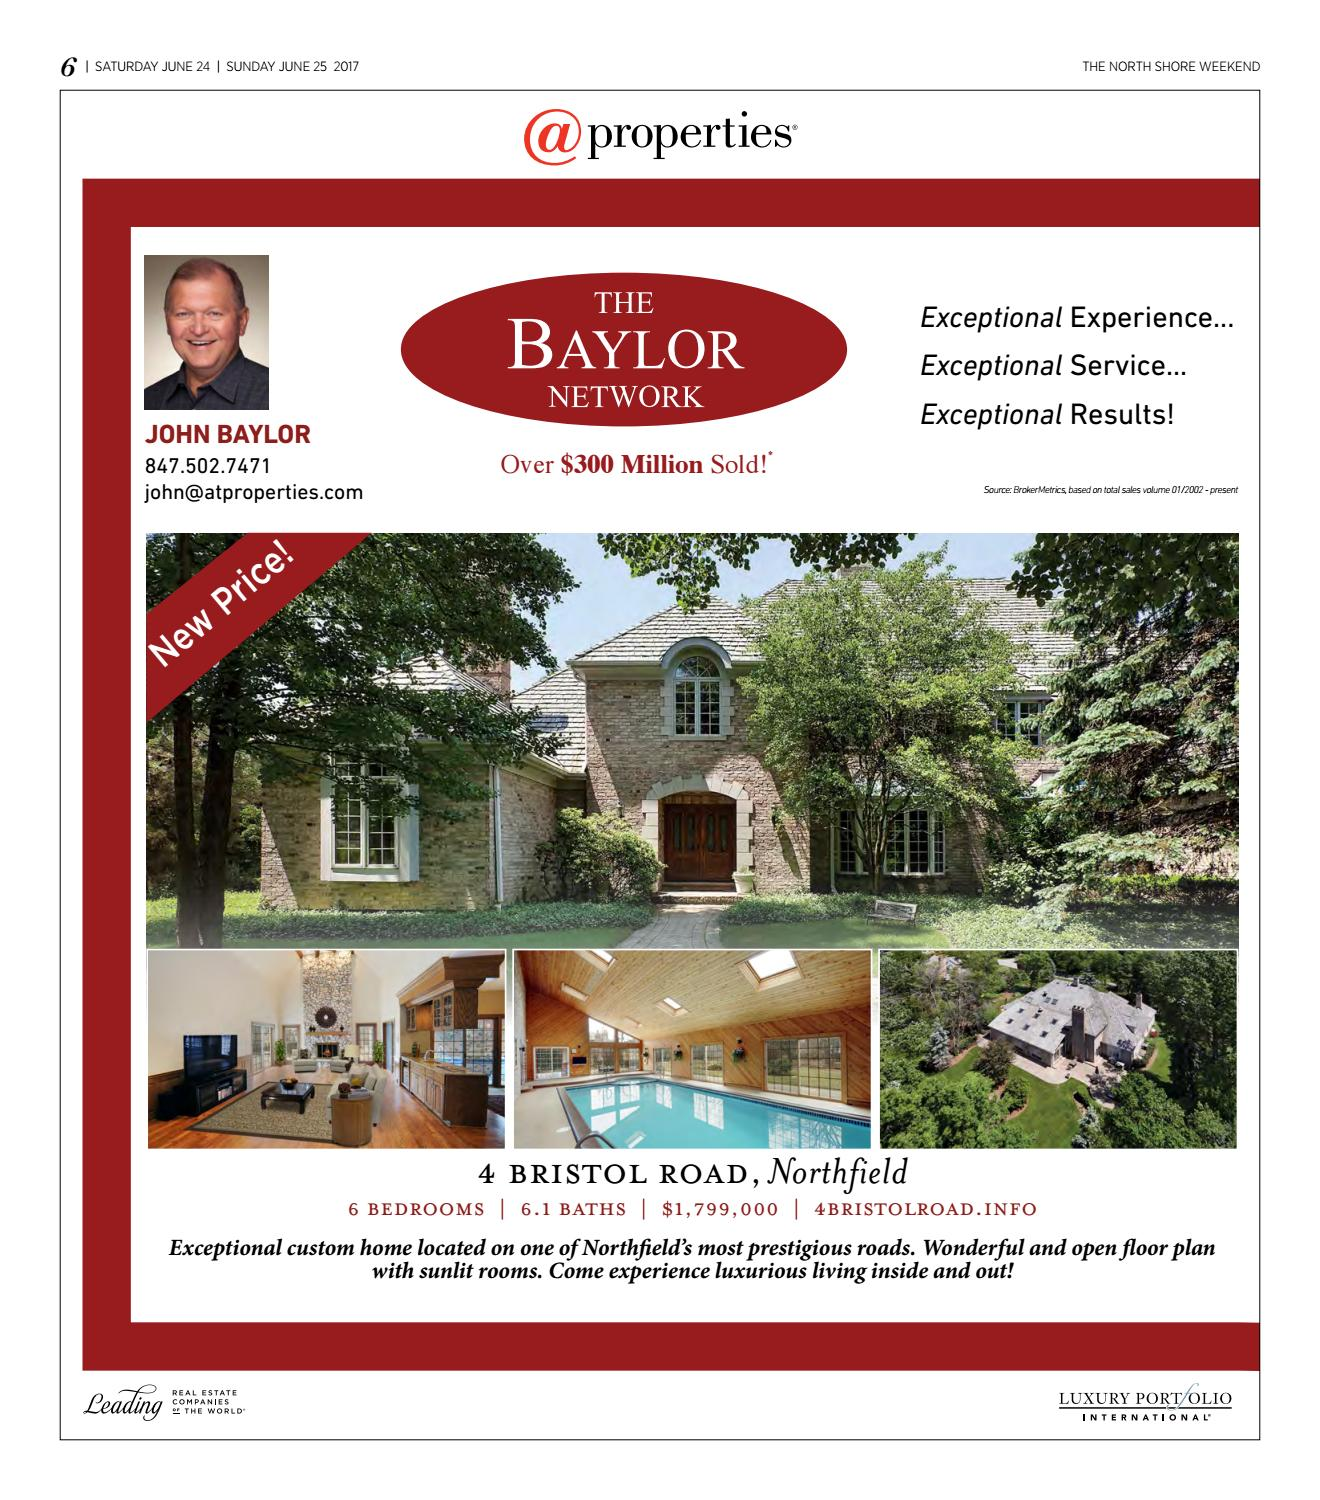 John Baylor Prep 01 18 2017 >> The North Shore Weekend East, Issue 246 by JWC Media - Issuu